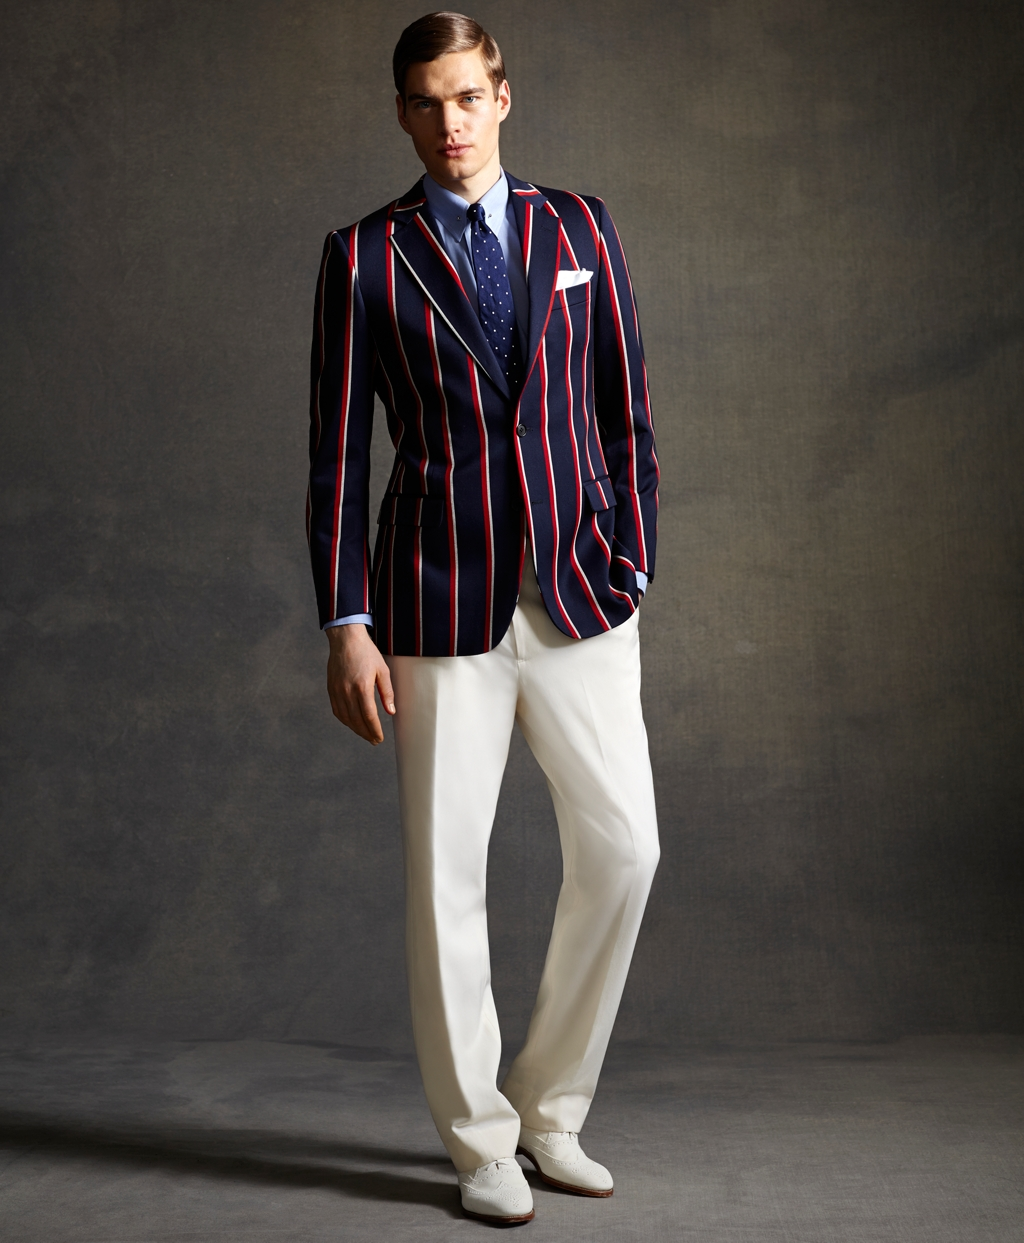 Courtesy of Brooks Brothers.